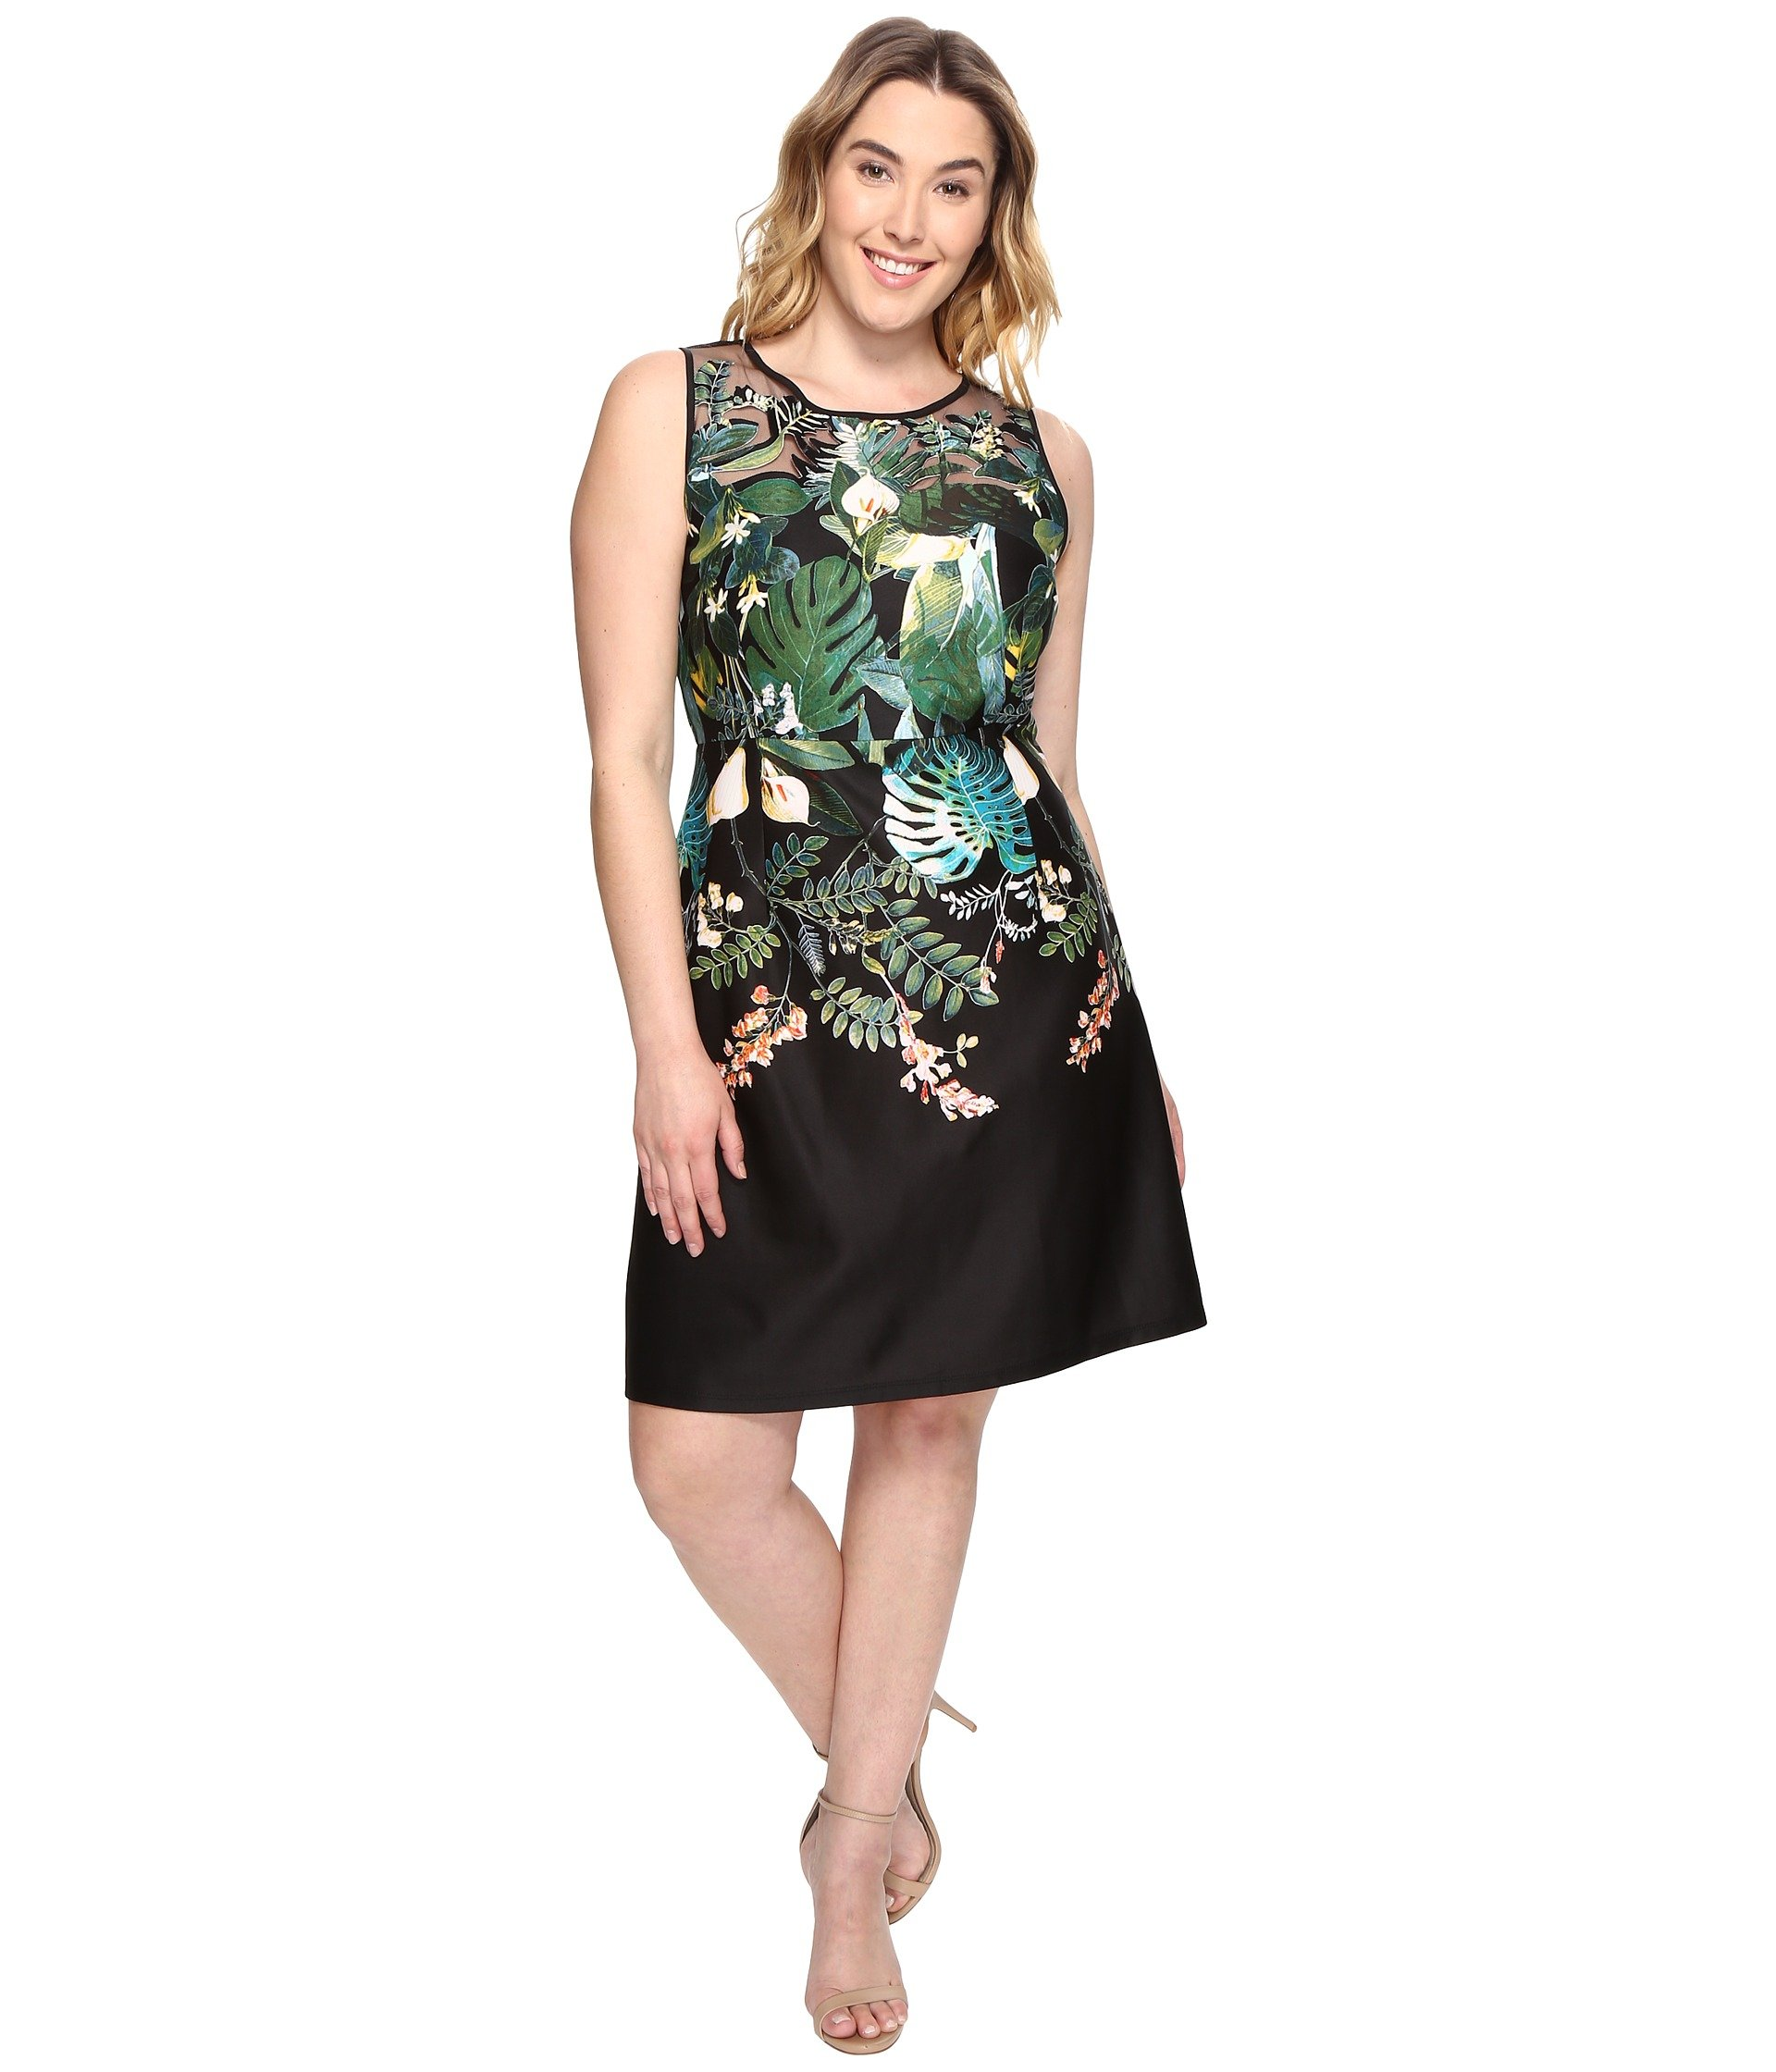 Adrianna Papell Plus Size Dresses